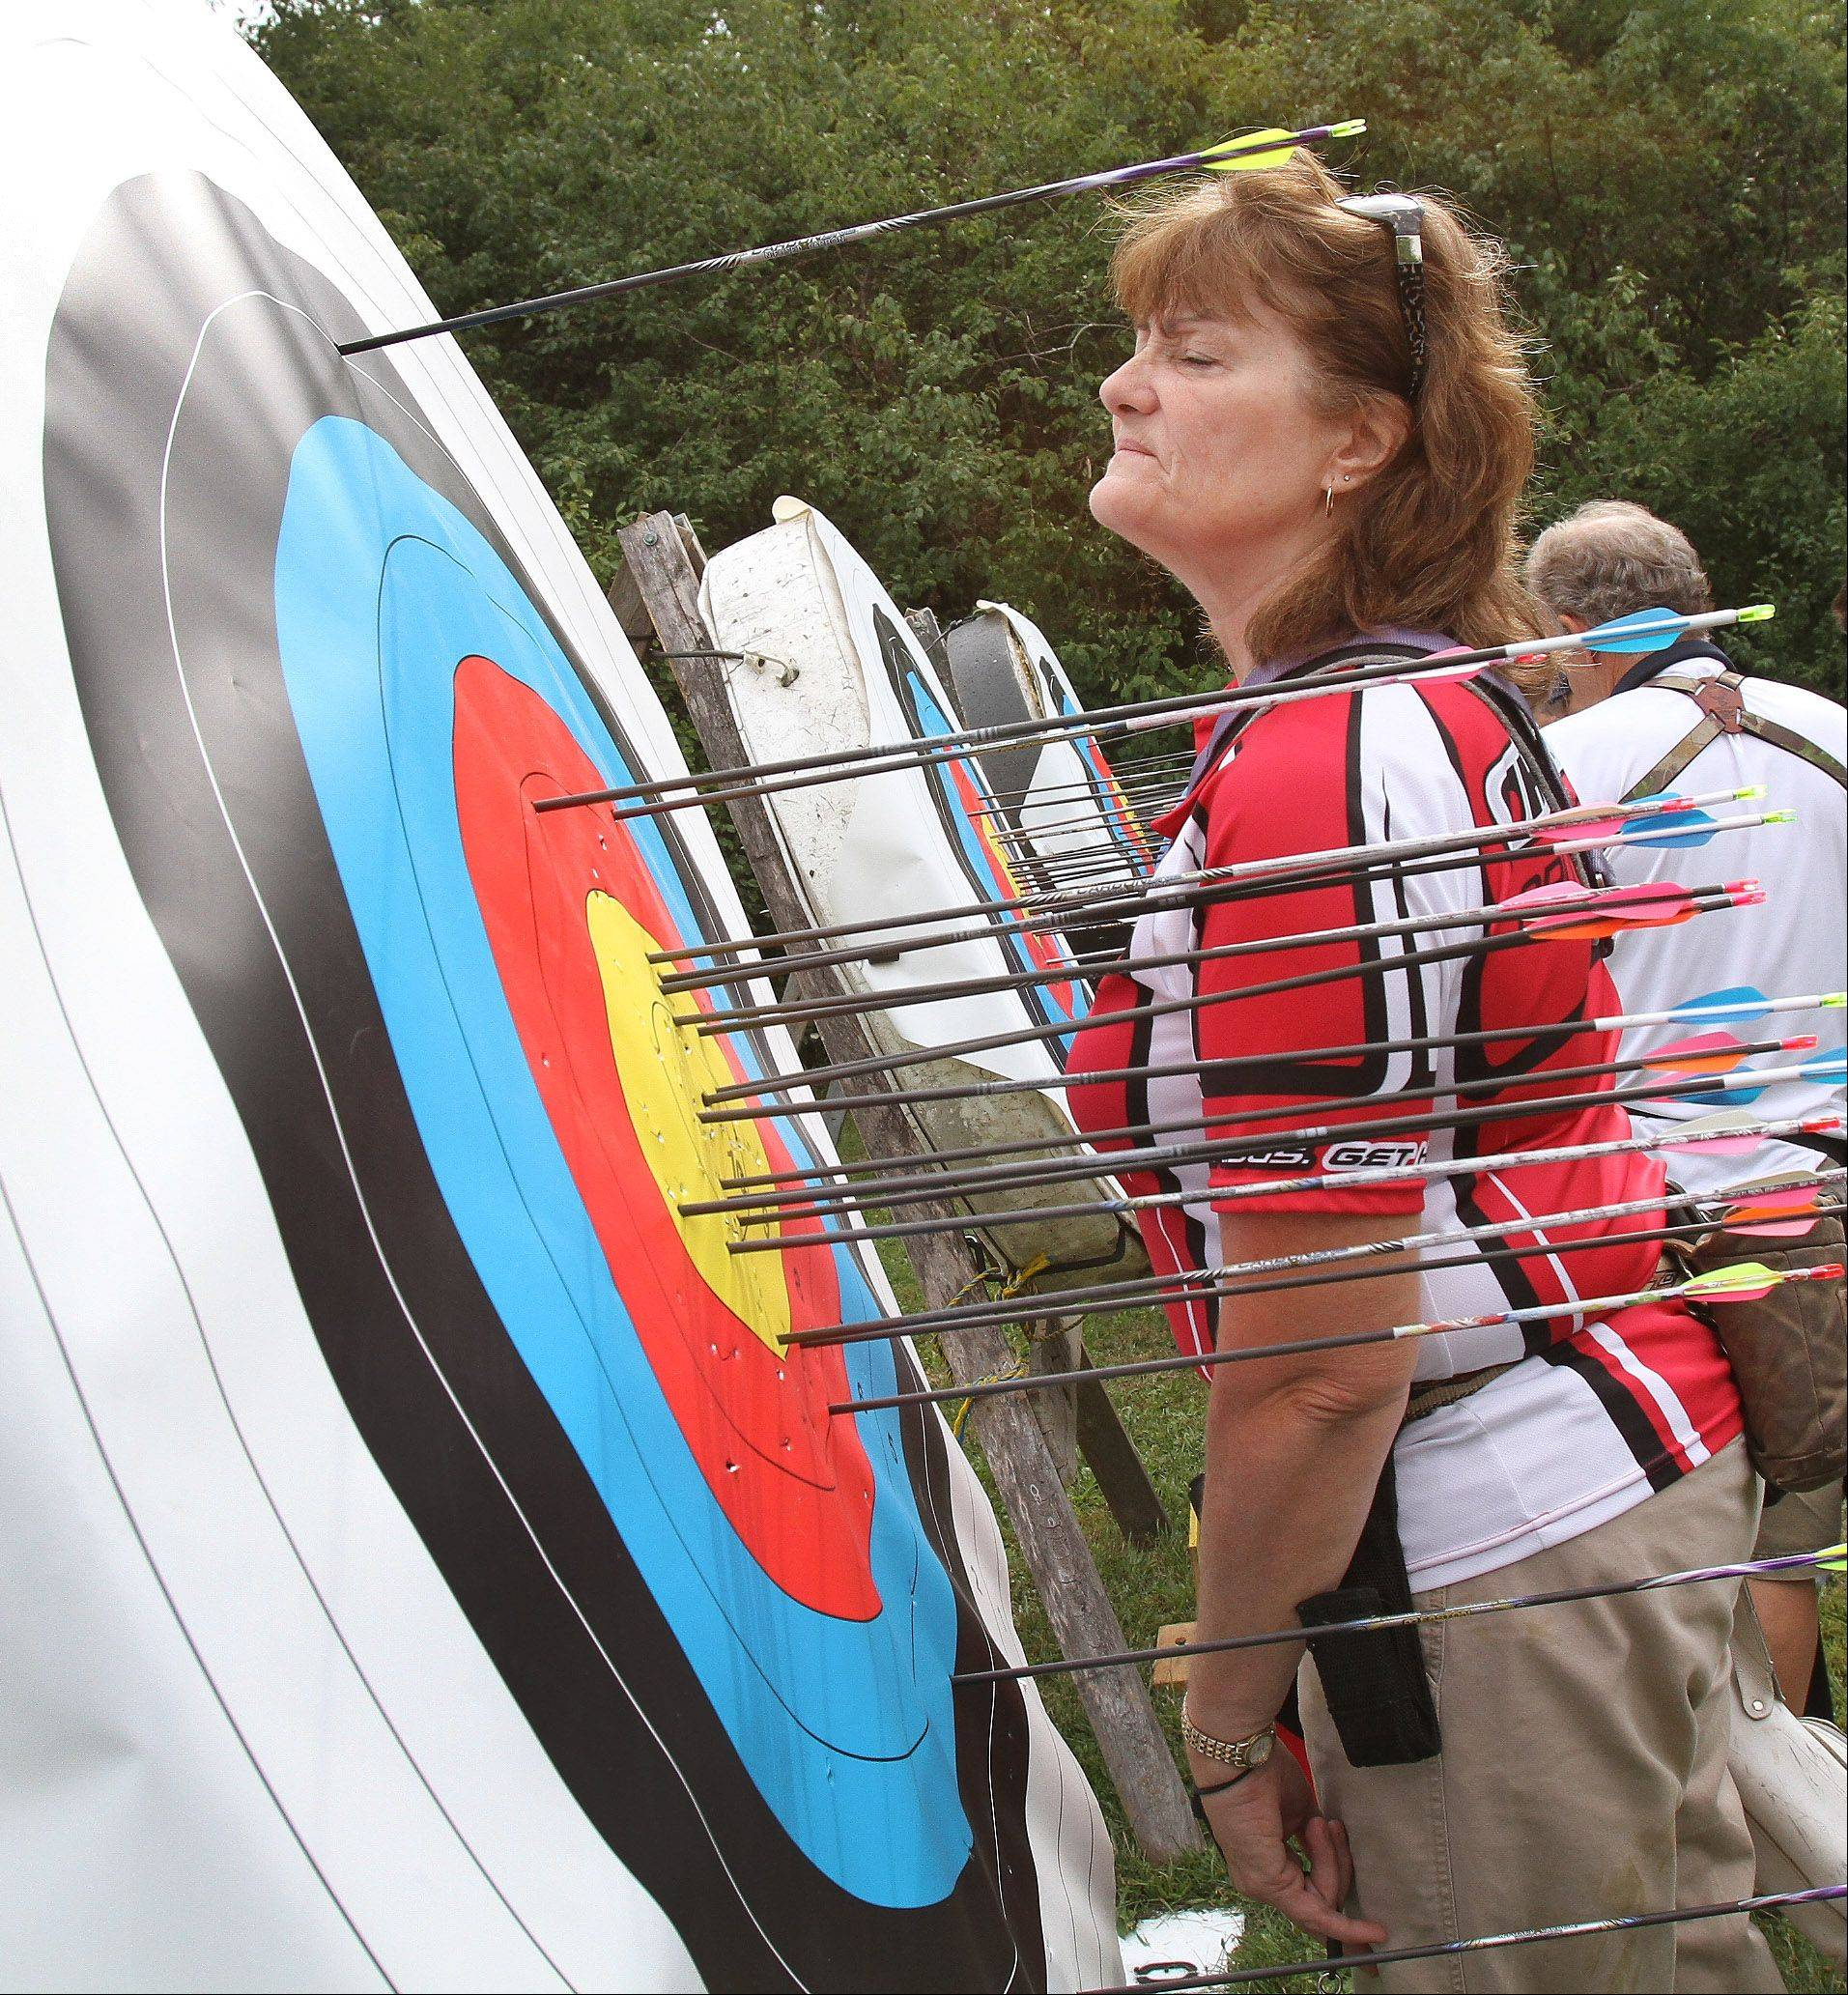 Nancy Zorn of Warrenville, competing in the compound bow division, checks a score during the Illinois Target Archery Association's annual Outdoor State Championship at Wheaton Rifle Club in West Chicago on Sunday.